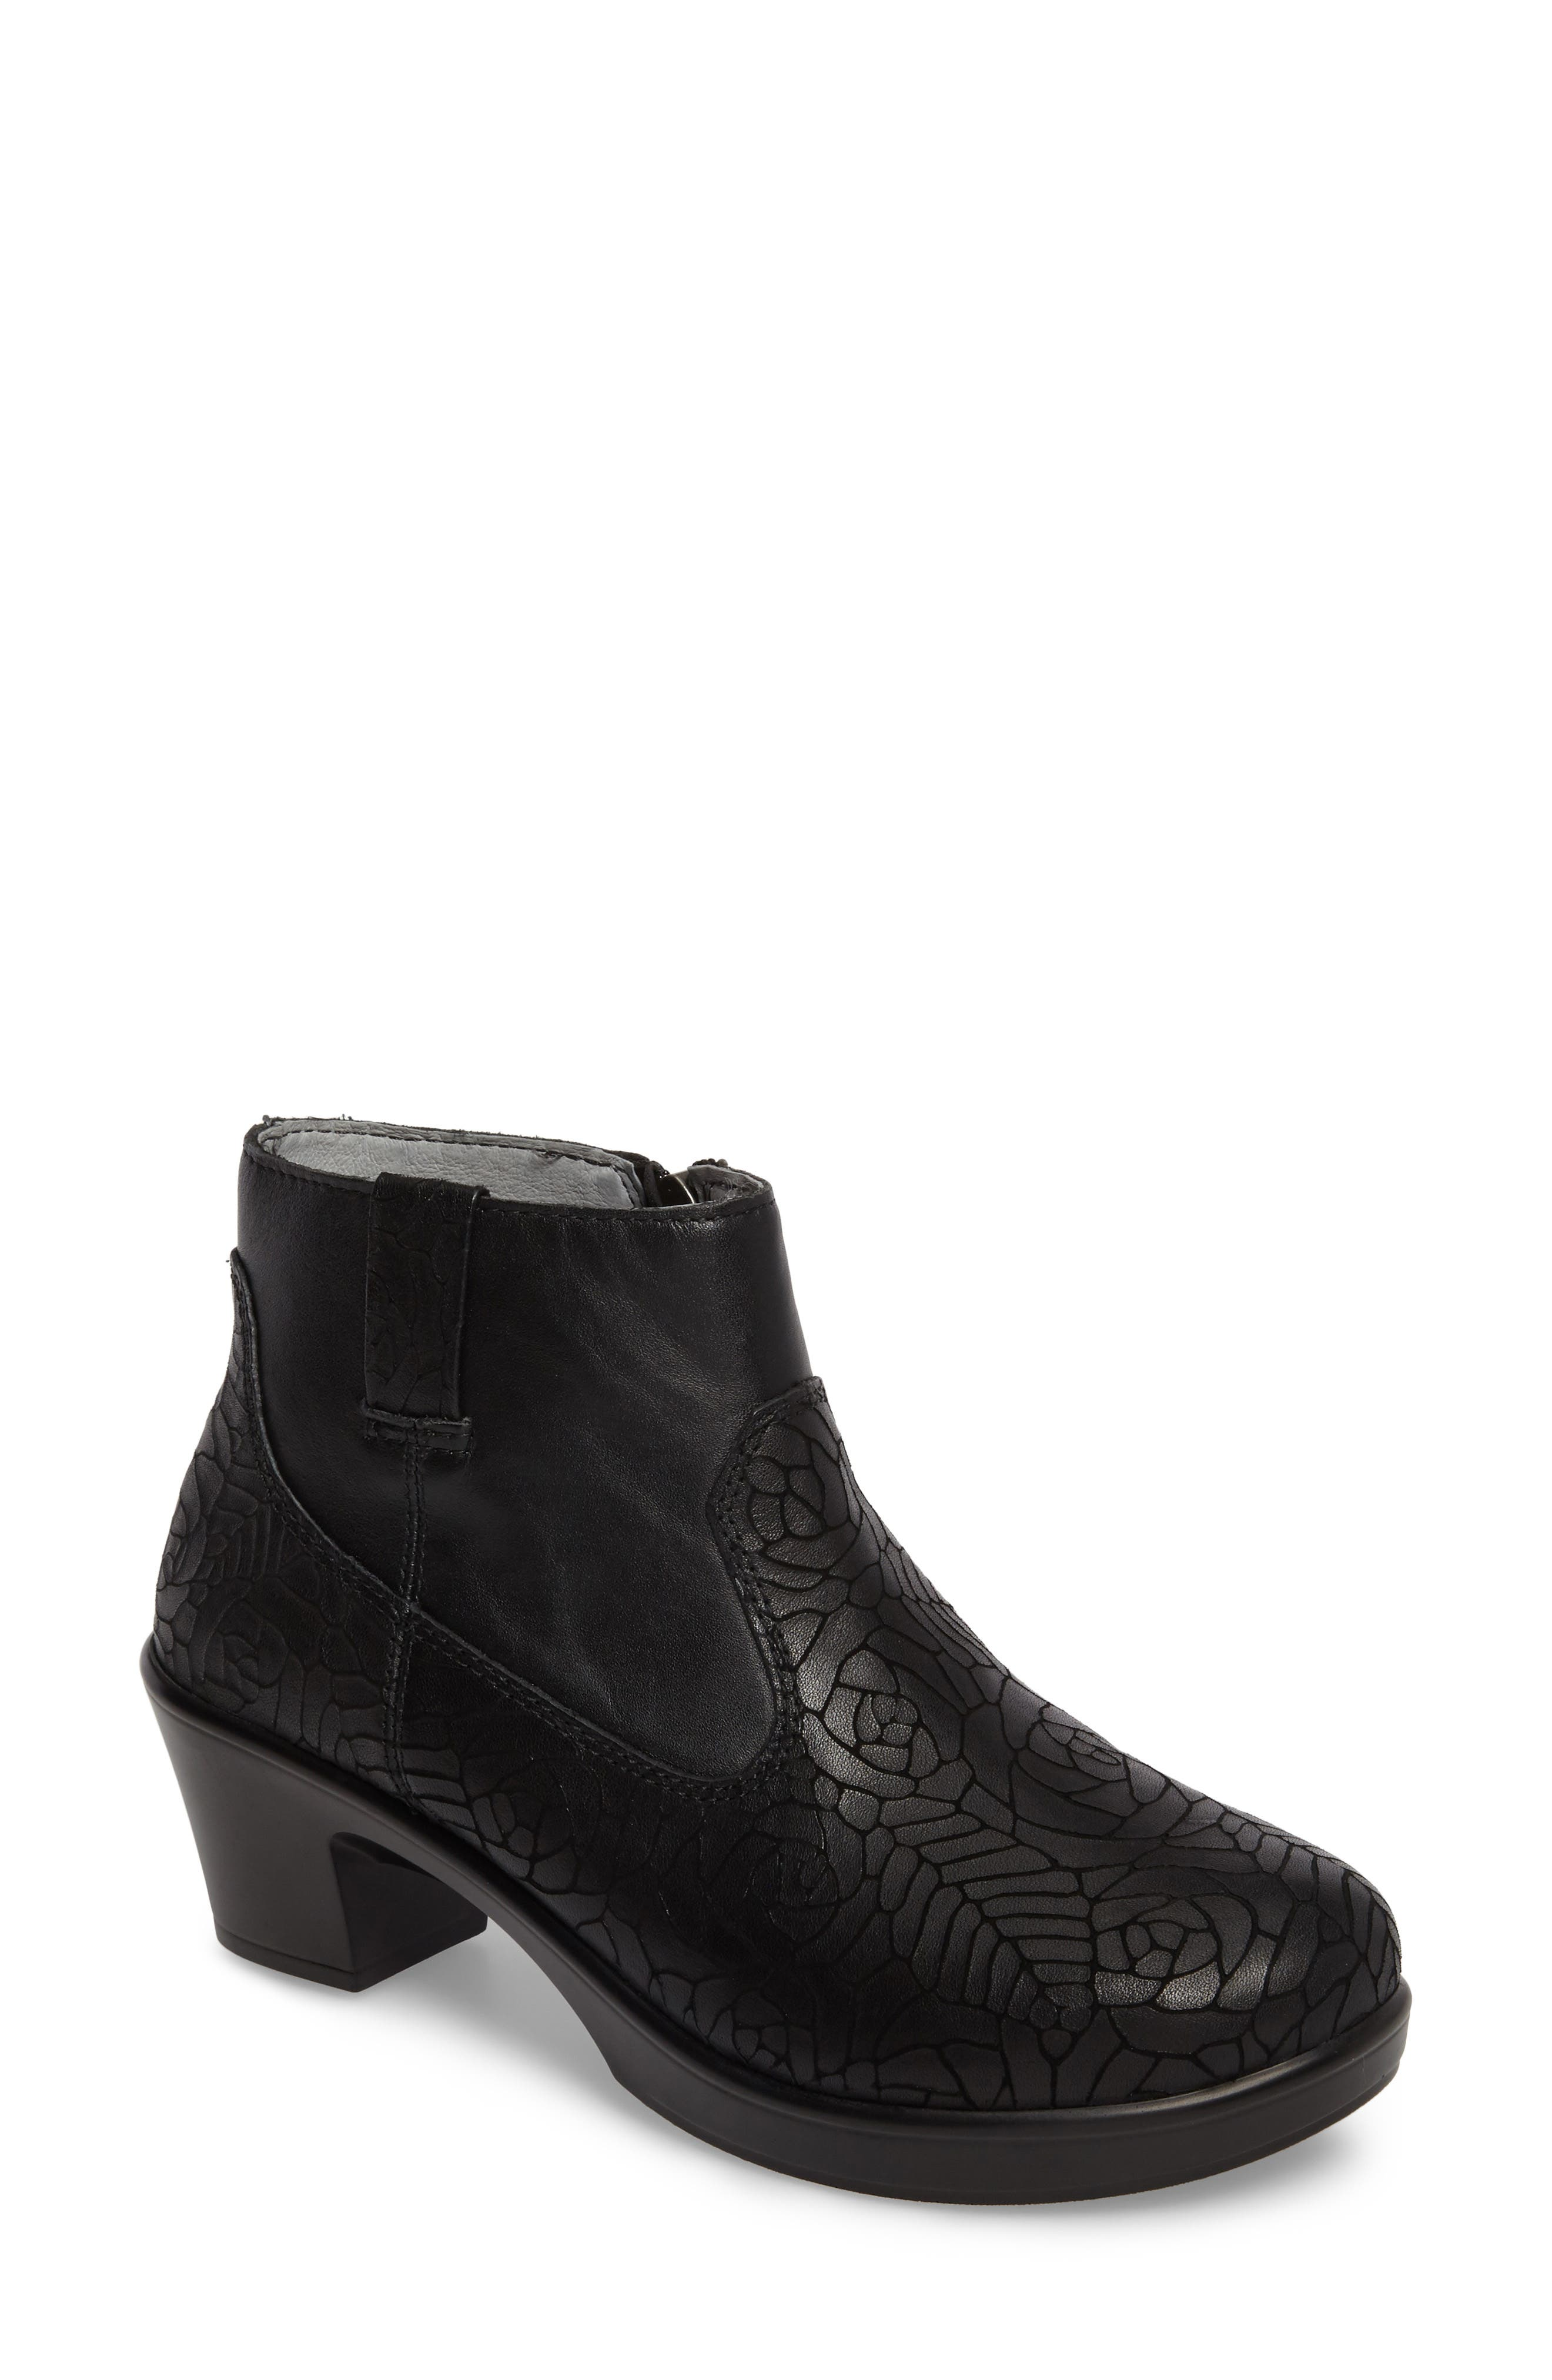 Hayden Bootie,                             Main thumbnail 1, color,                             FLORAL NOTES LEATHER